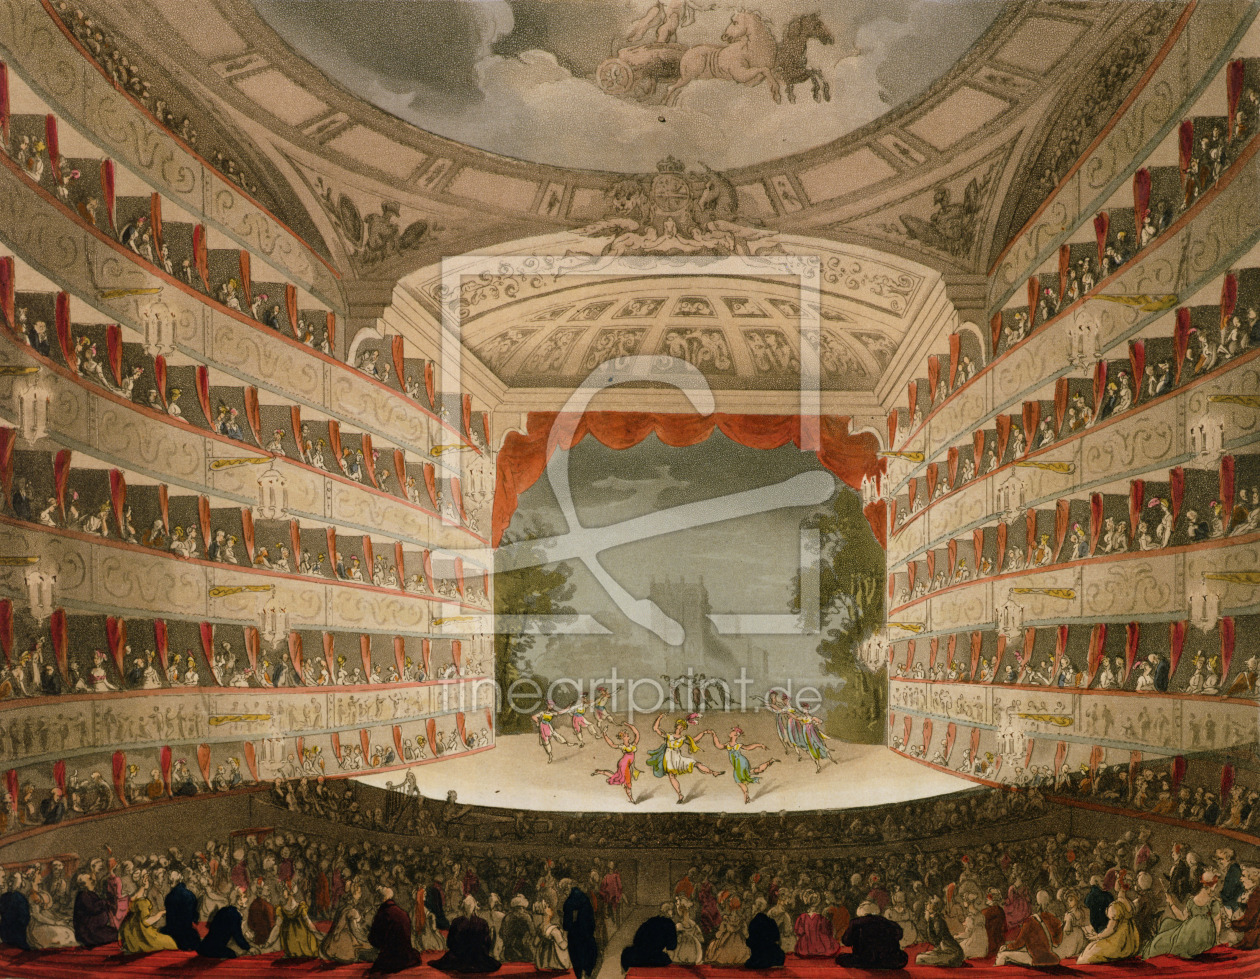 Bild-Nr.: 31002640 Kings Theatre Opera House, engraved by J. Bluck, pub. by Ackermann's 'Repository erstellt von Rowlandson, Thomas